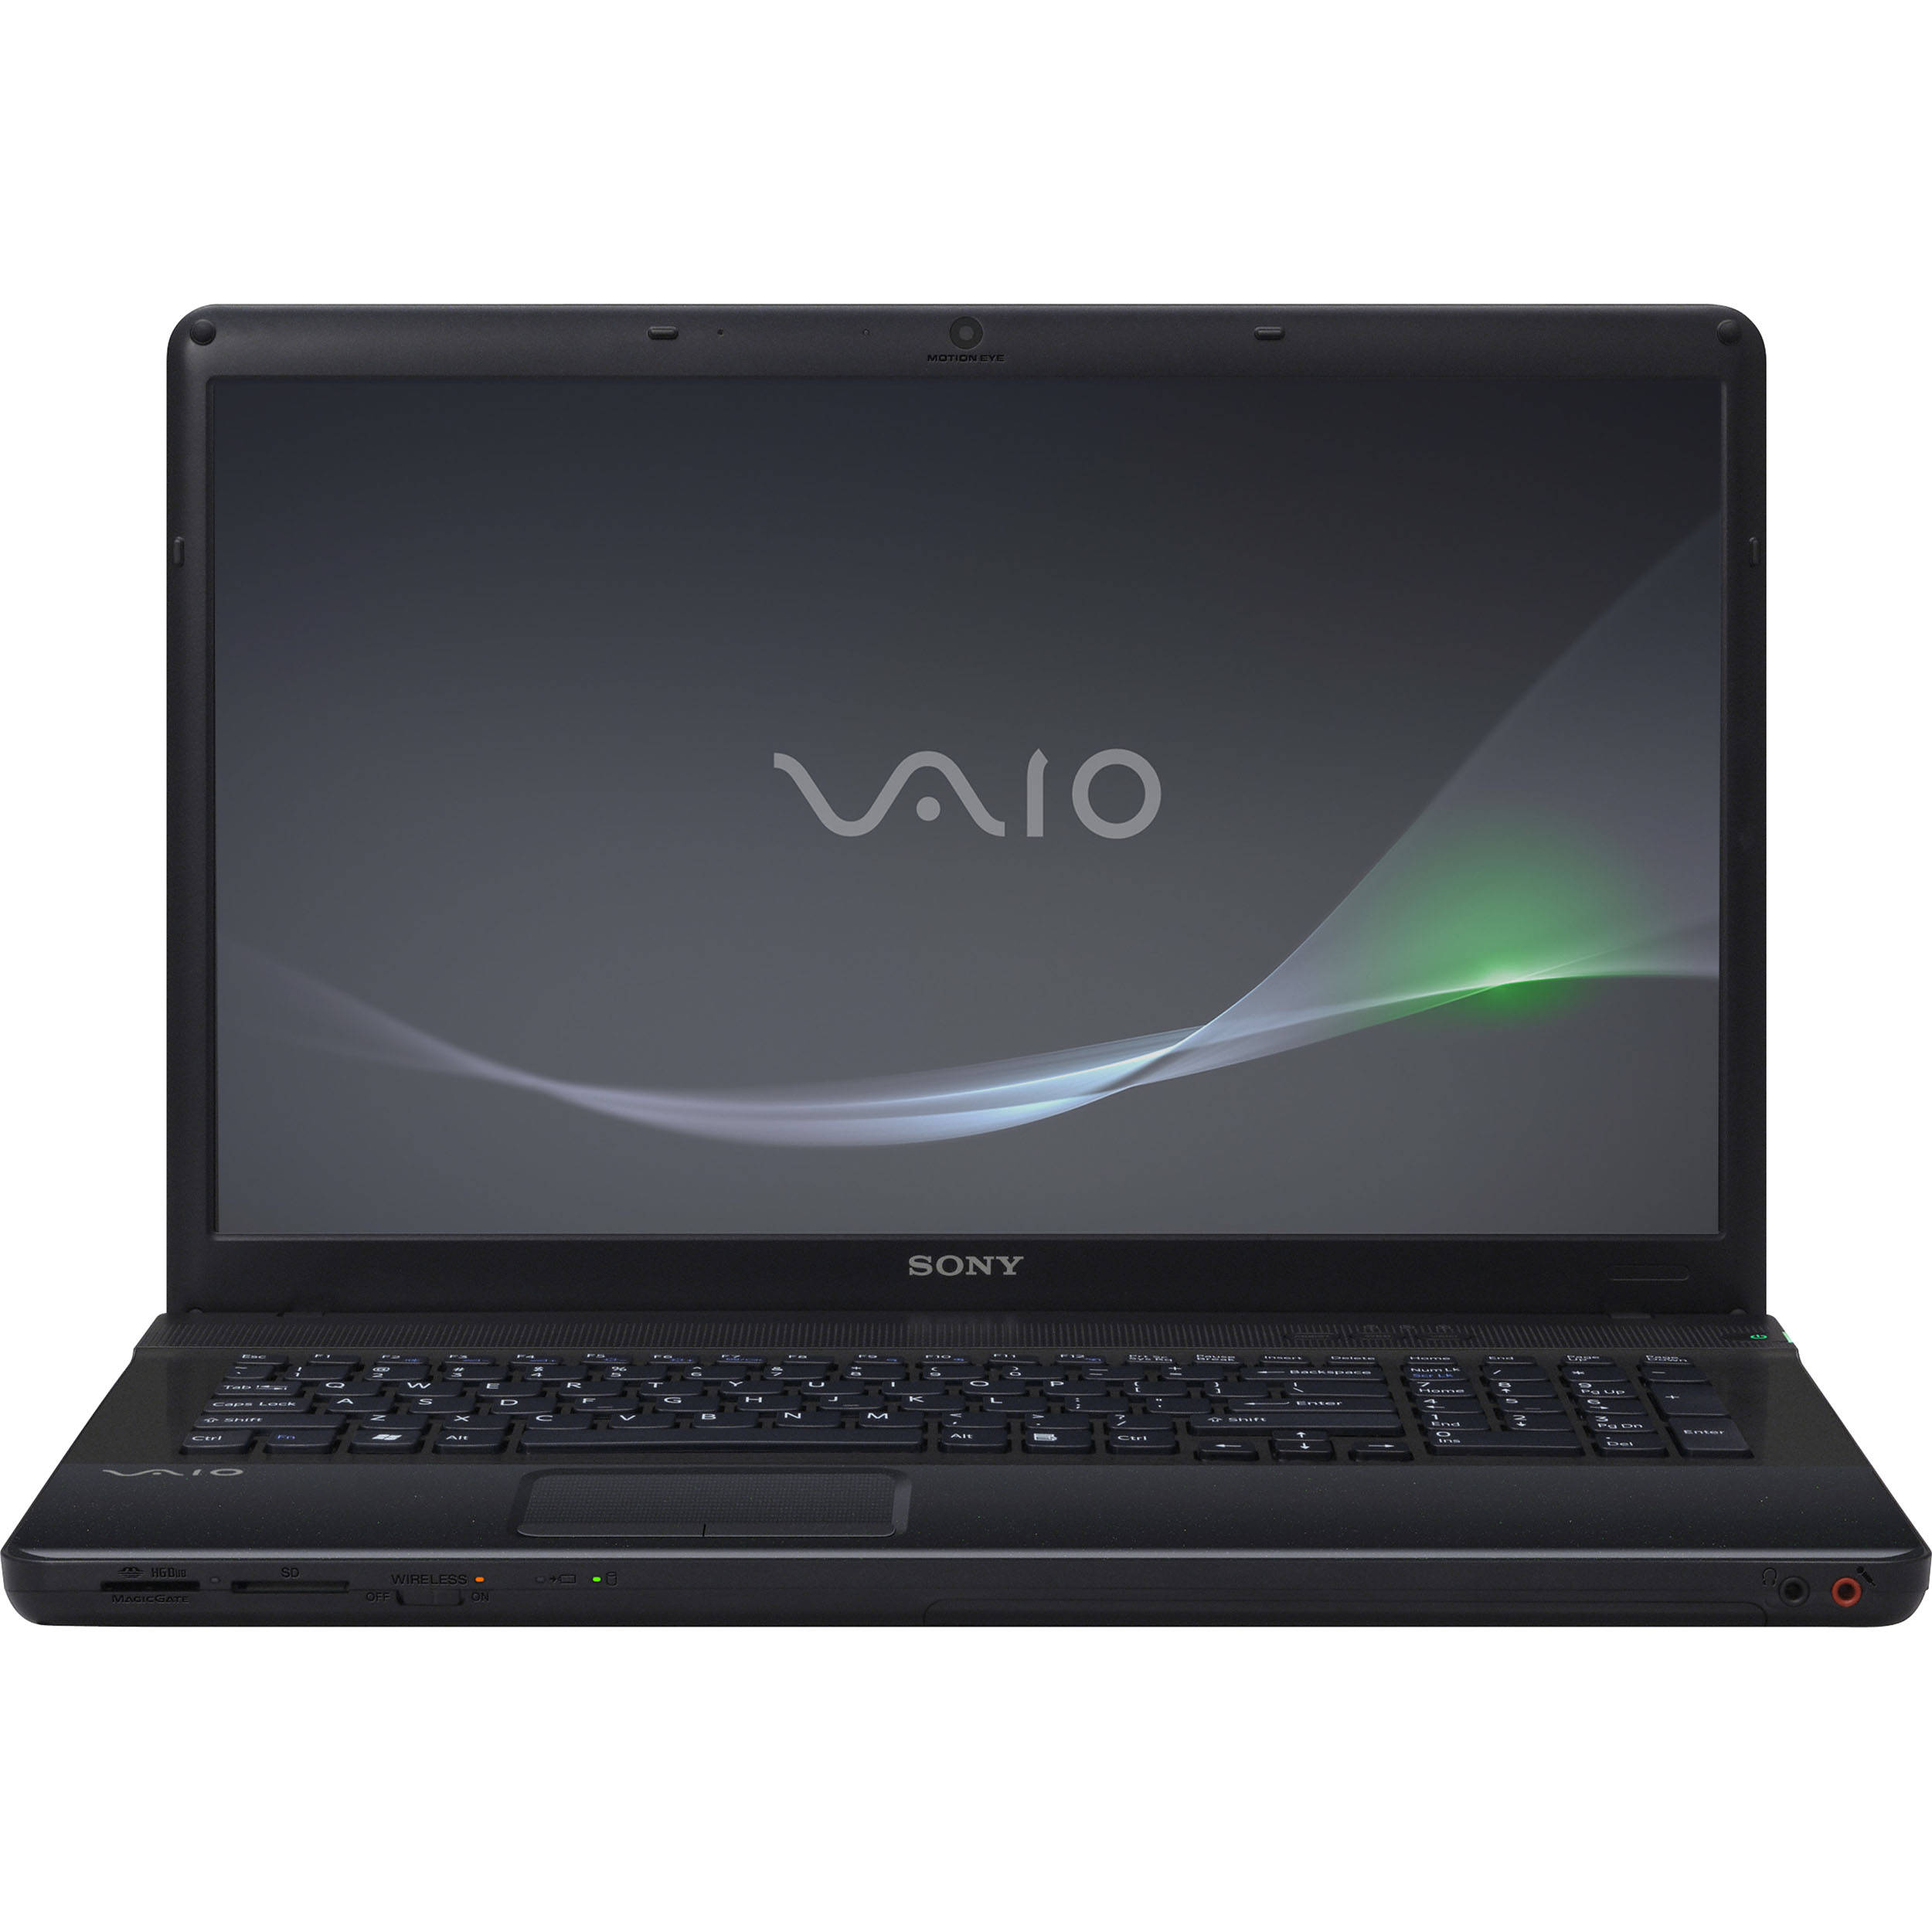 Sony Vaio VPCEC22FX TouchPad Settings Driver (2019)